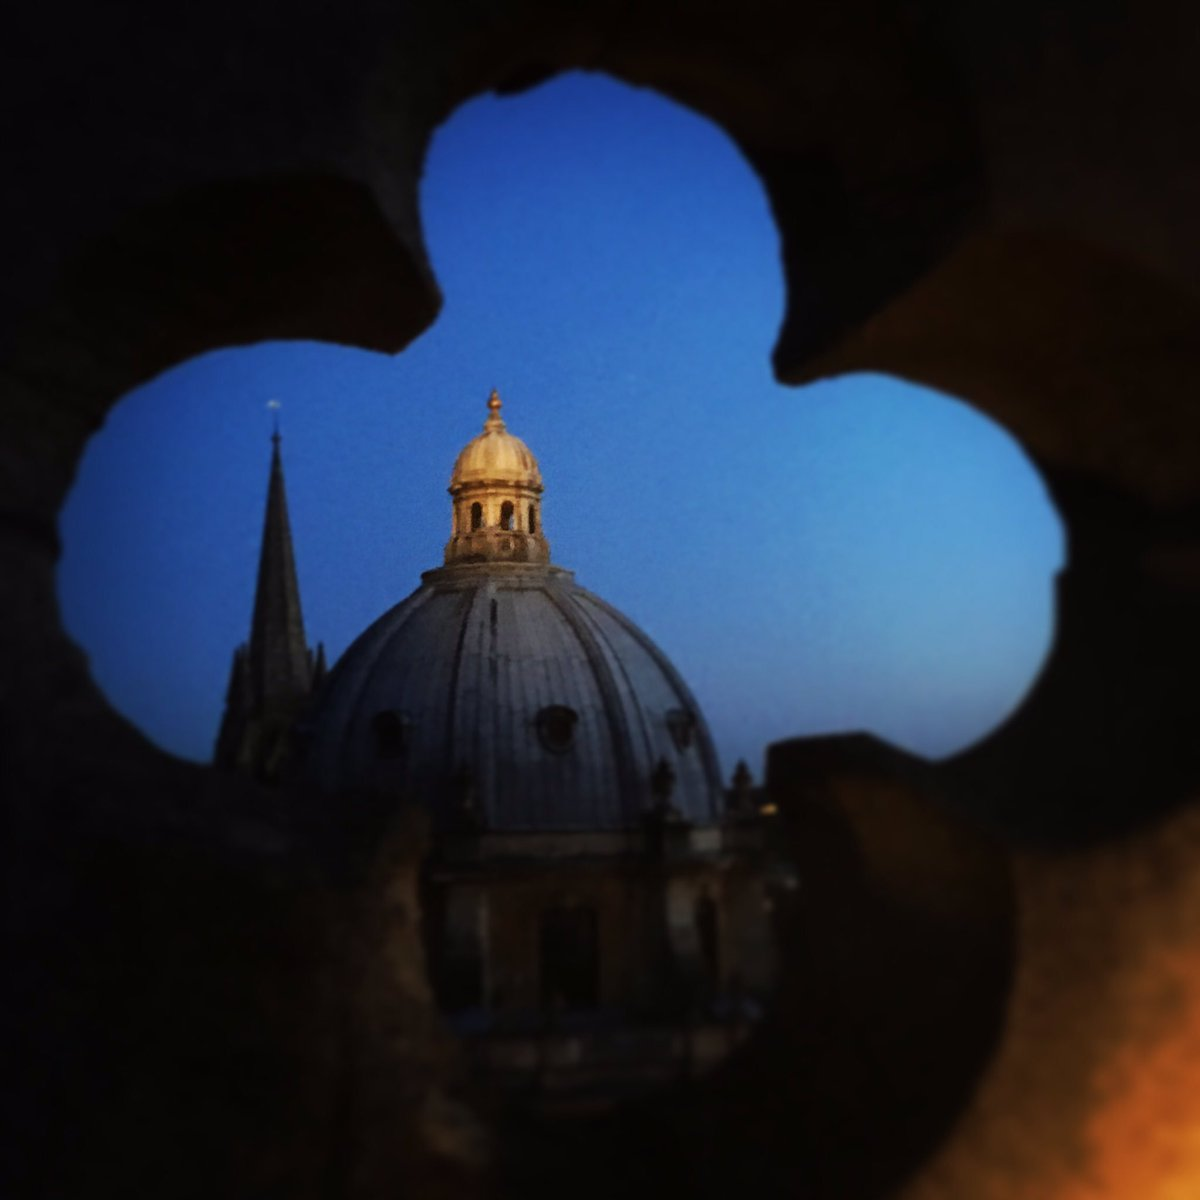 1 week to go... @SLL100 #NOHL #PocketsofLight #CuriosityCarnival @UniofOxford #Oxford @TheRealRadCam<br>http://pic.twitter.com/GF69gvNK8Q